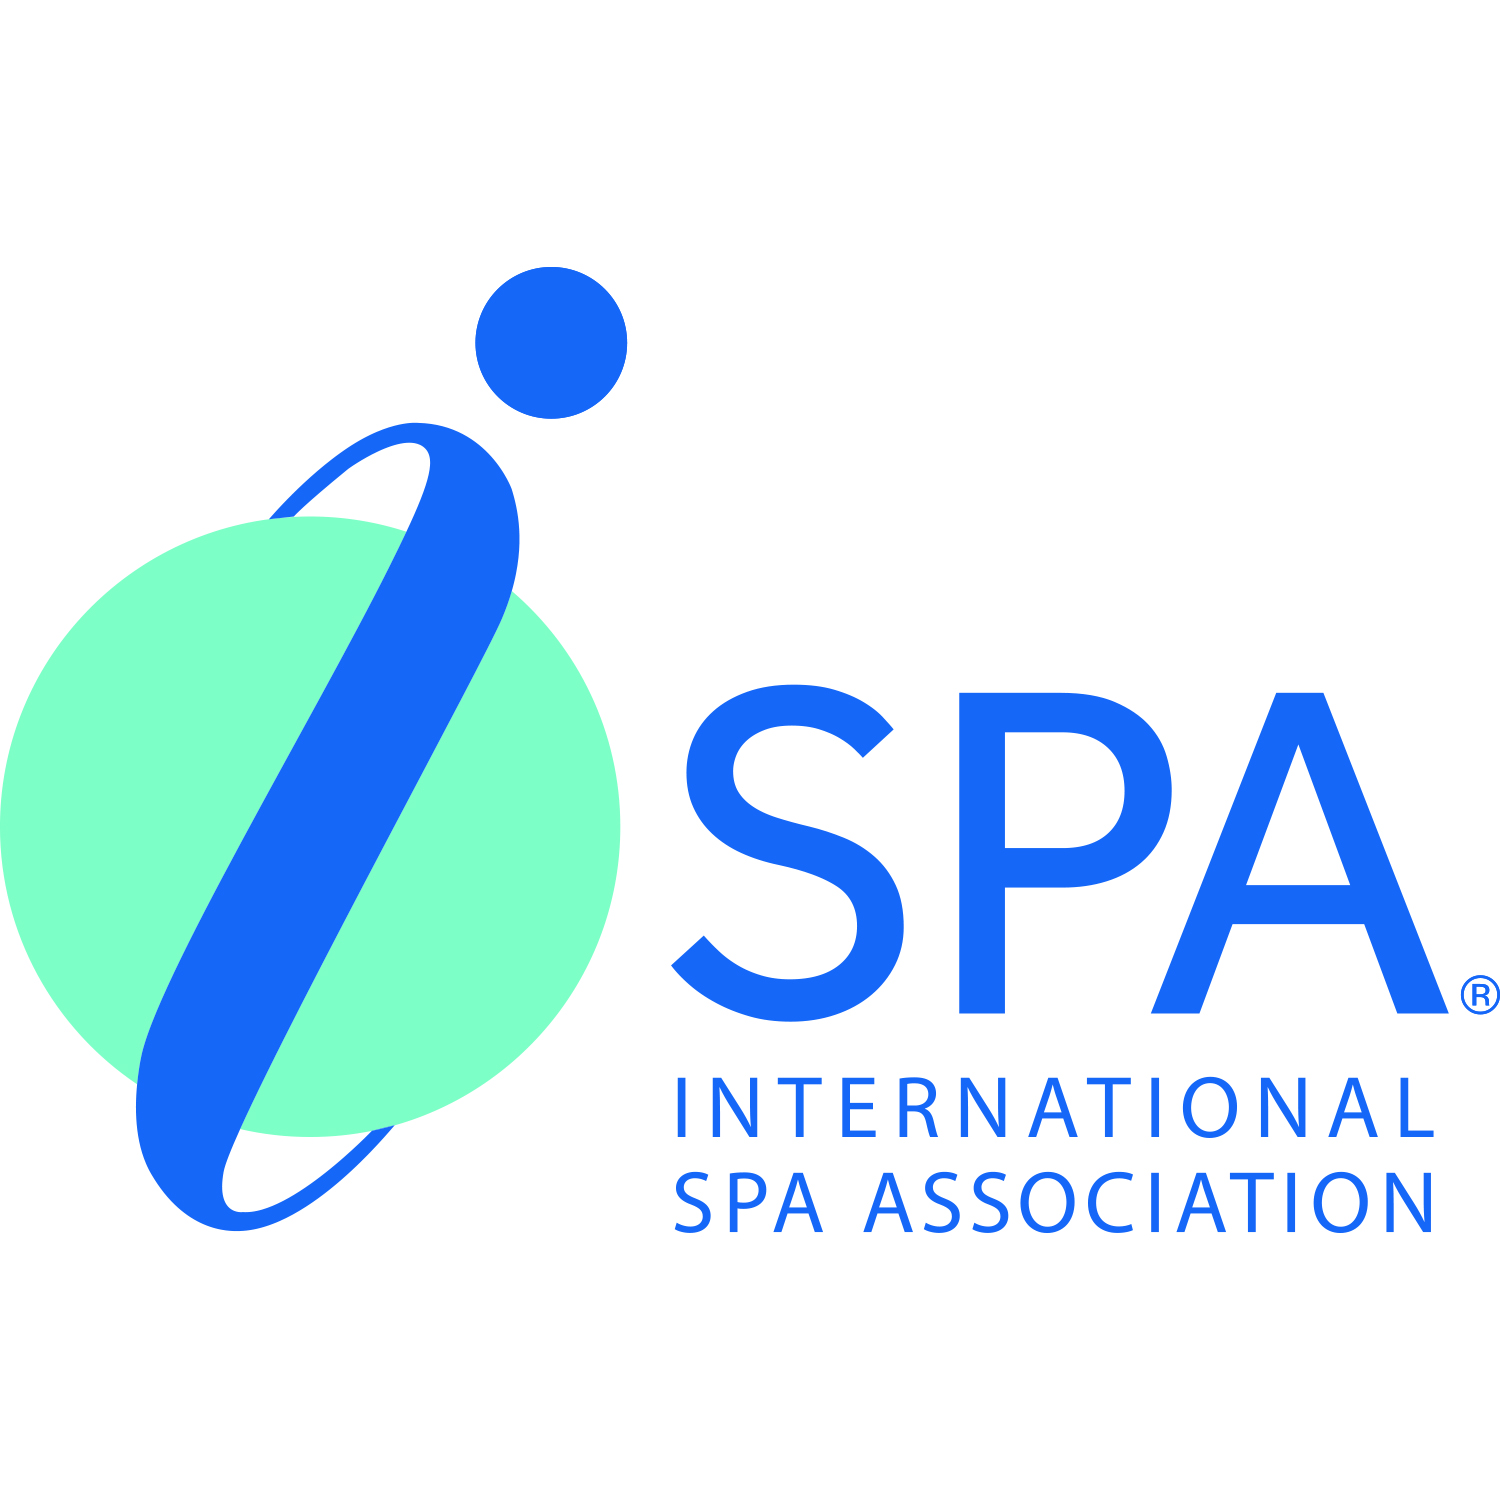 2018 ISPA Board of Directors and Officers Elected